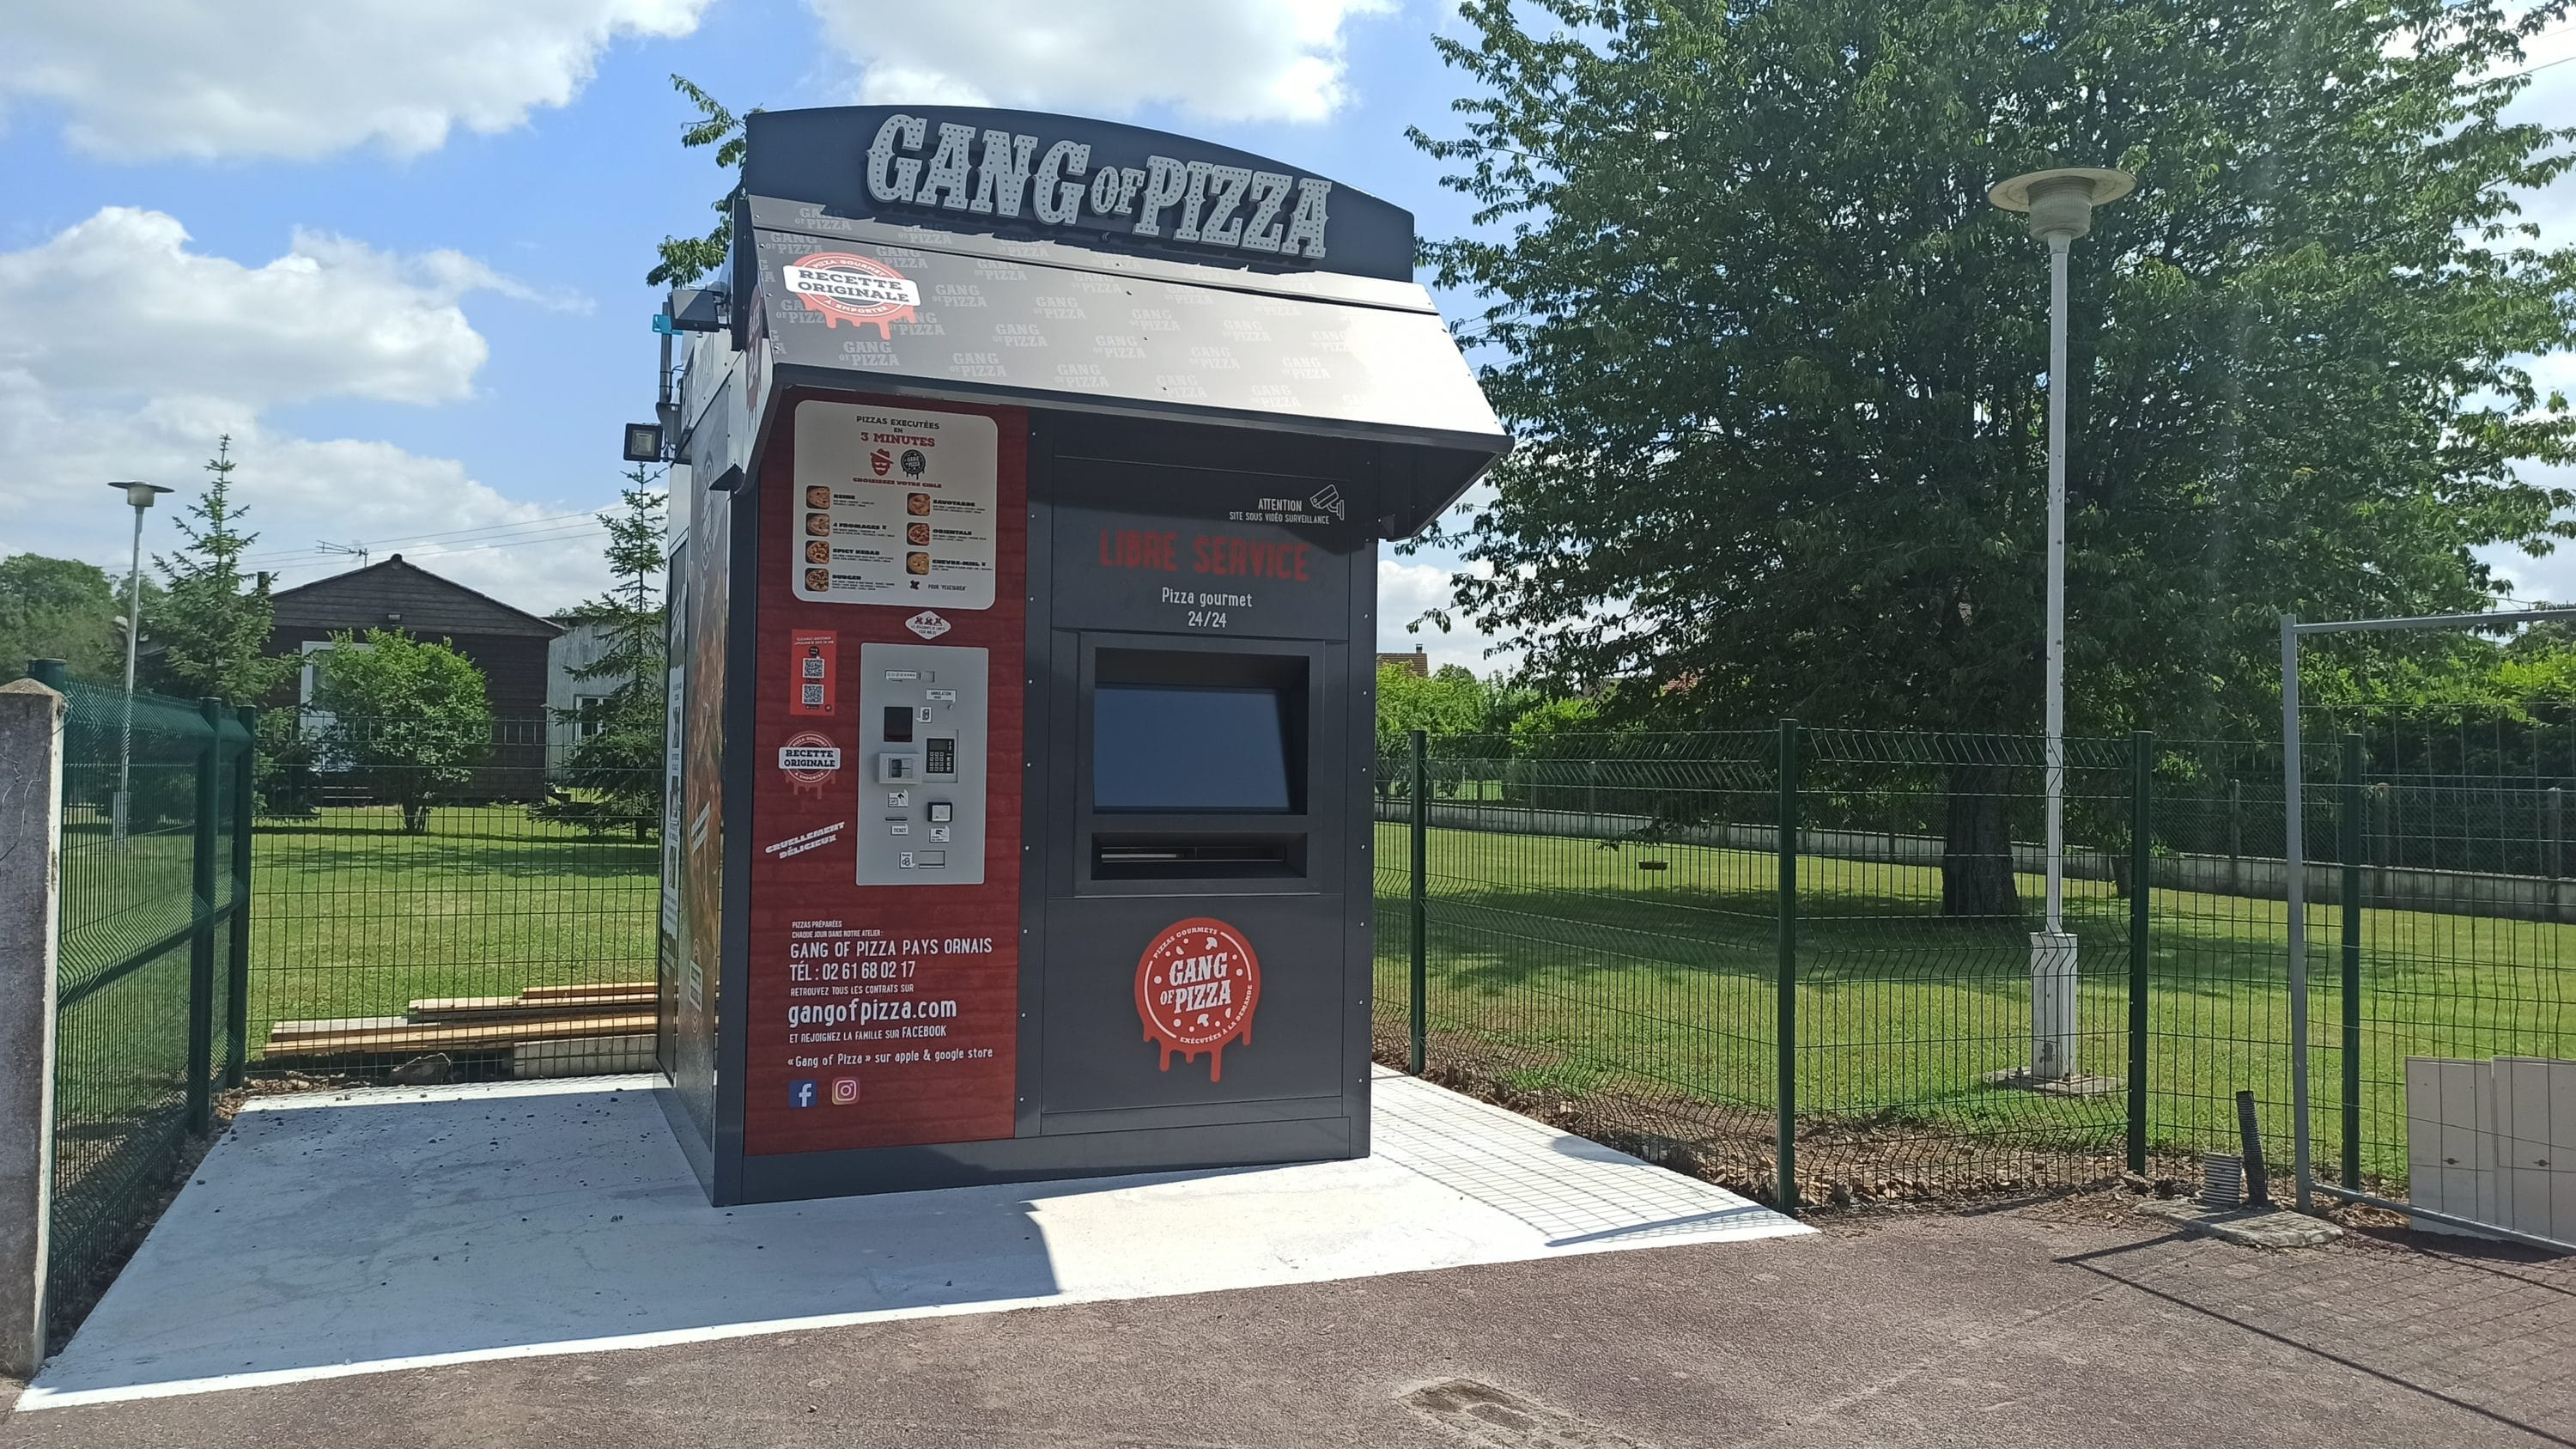 gang-of-pizza-debarque-a-bourth-distributeur-pizza-24-7-fast-food-fastfood-pizzas-rapide-gangofpizza-calvados-pays-d-auge